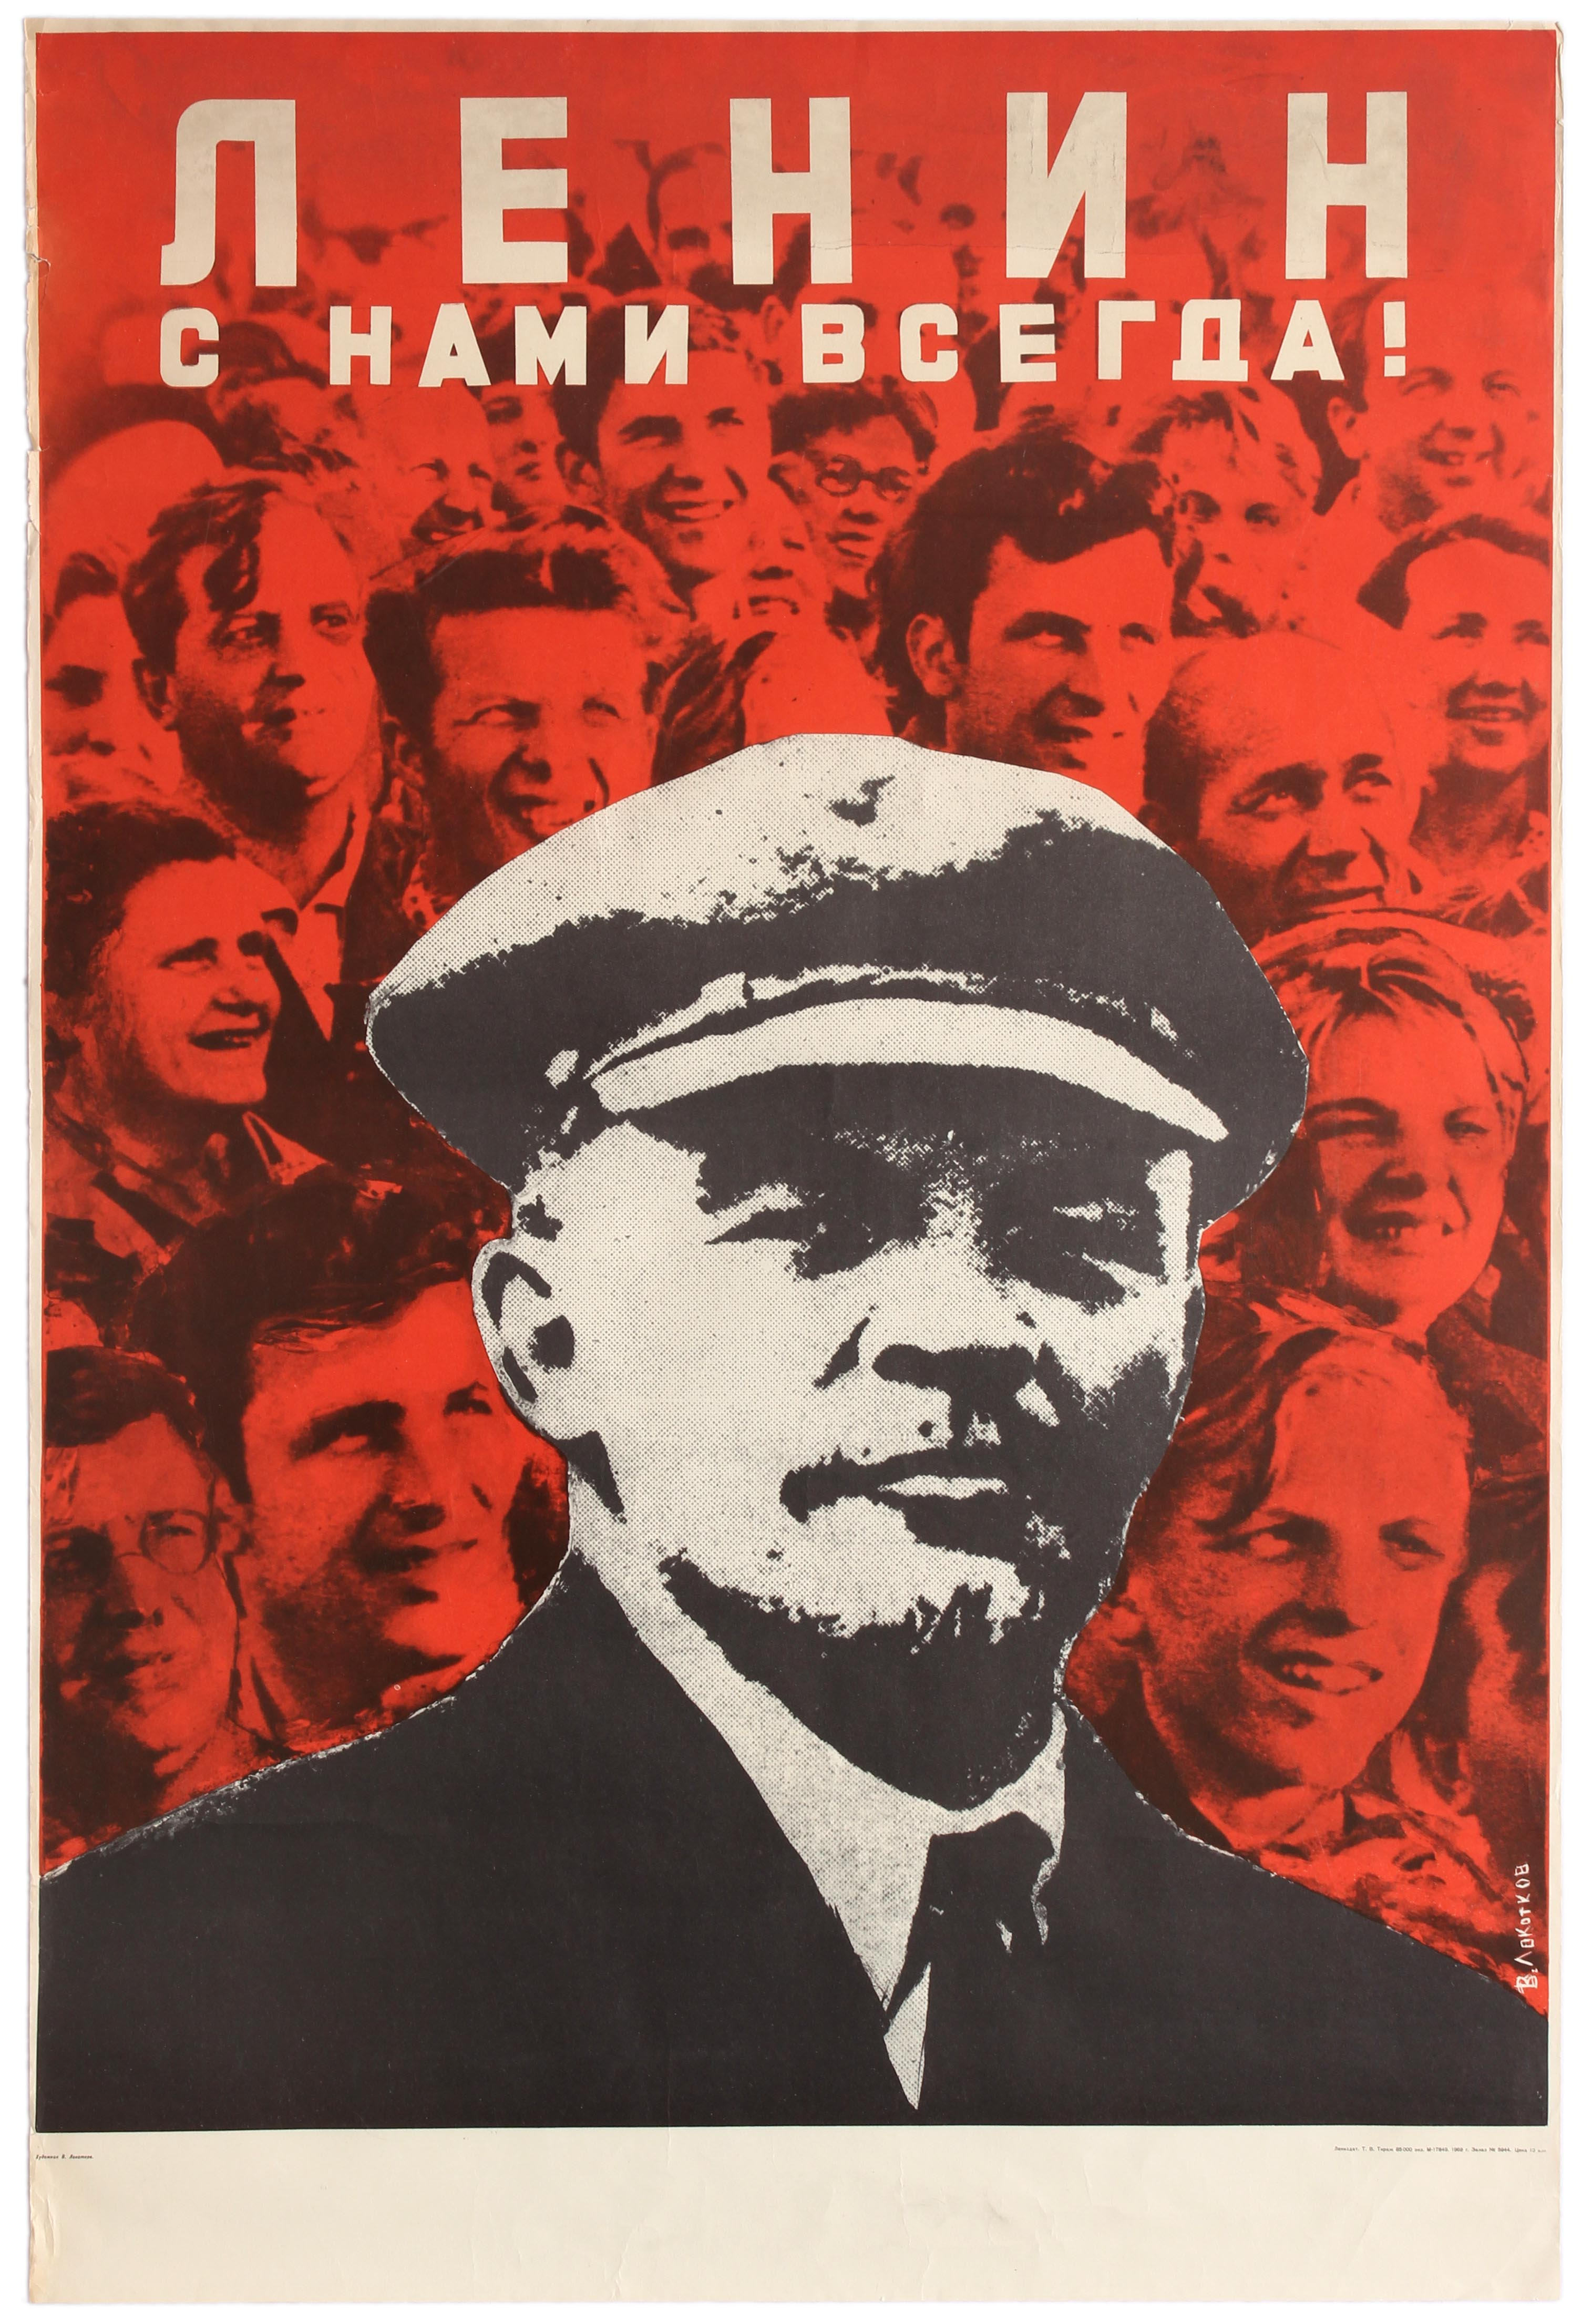 Lot 51 - Set 3 Propaganda Posters USSR Lenin Communist Party International